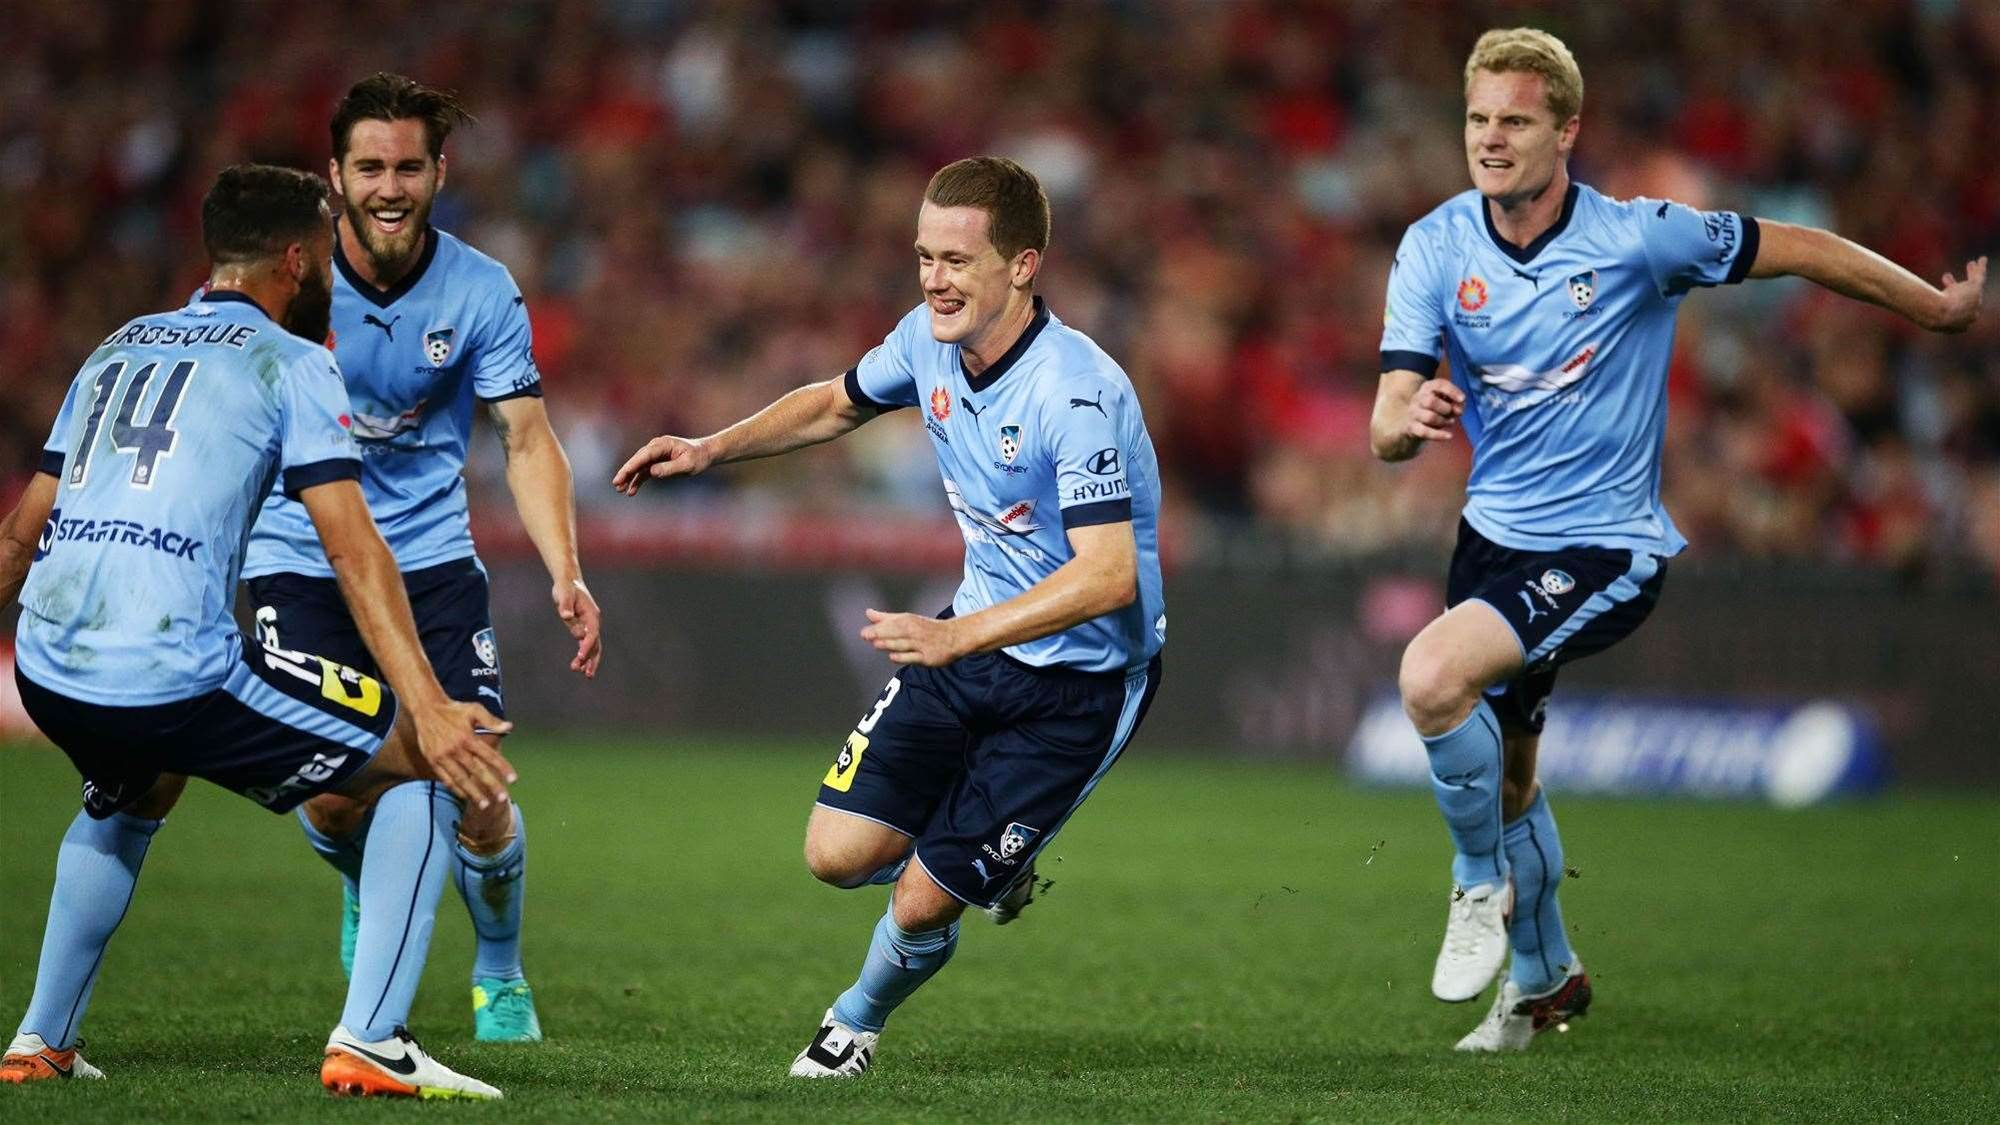 O'Neill: Brosque was going to take it